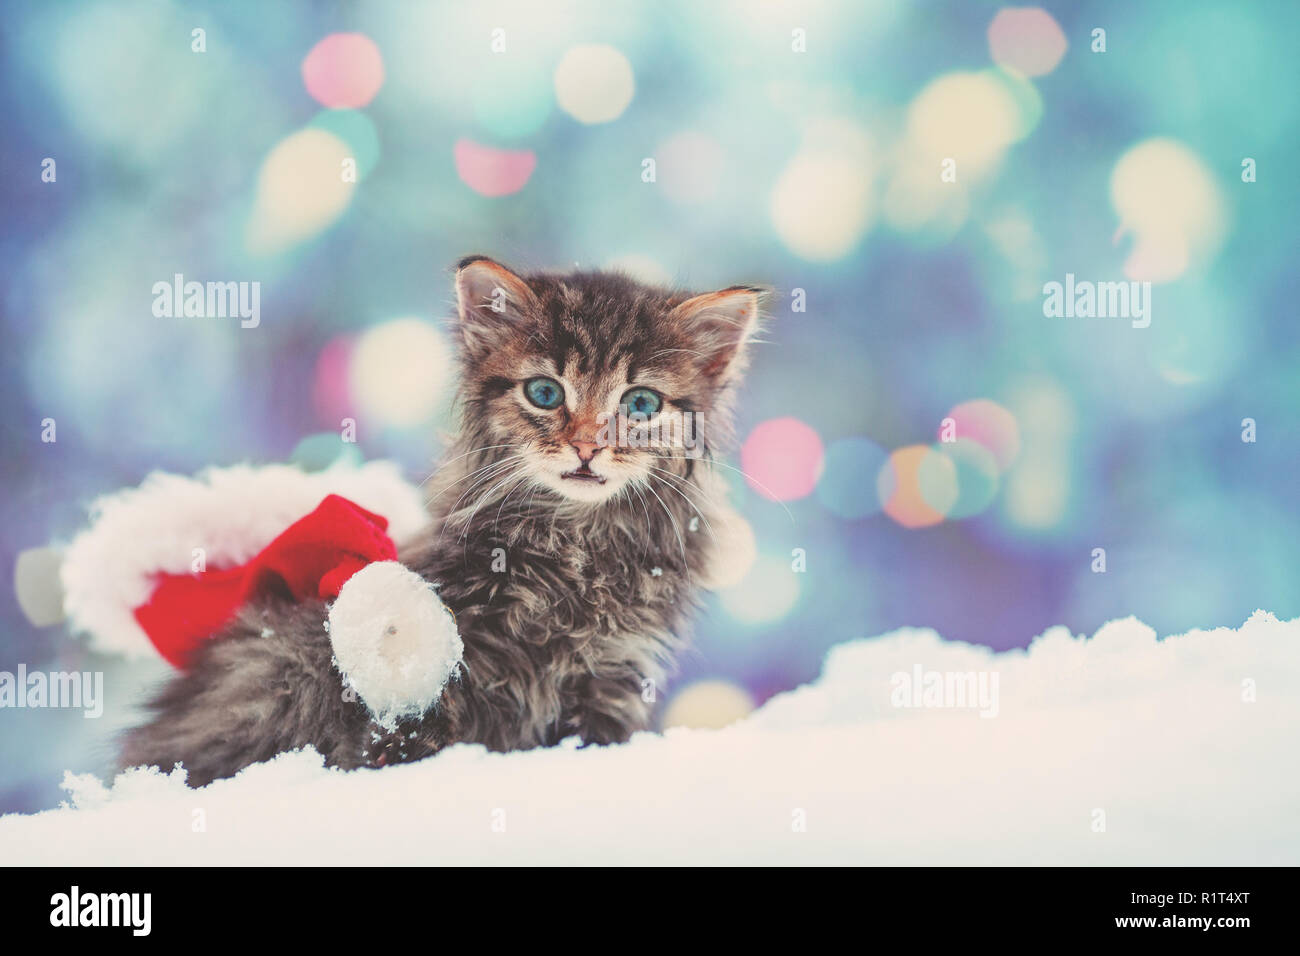 Little kitten with Santa Claus hat outdoors in snowy winter - Stock Image